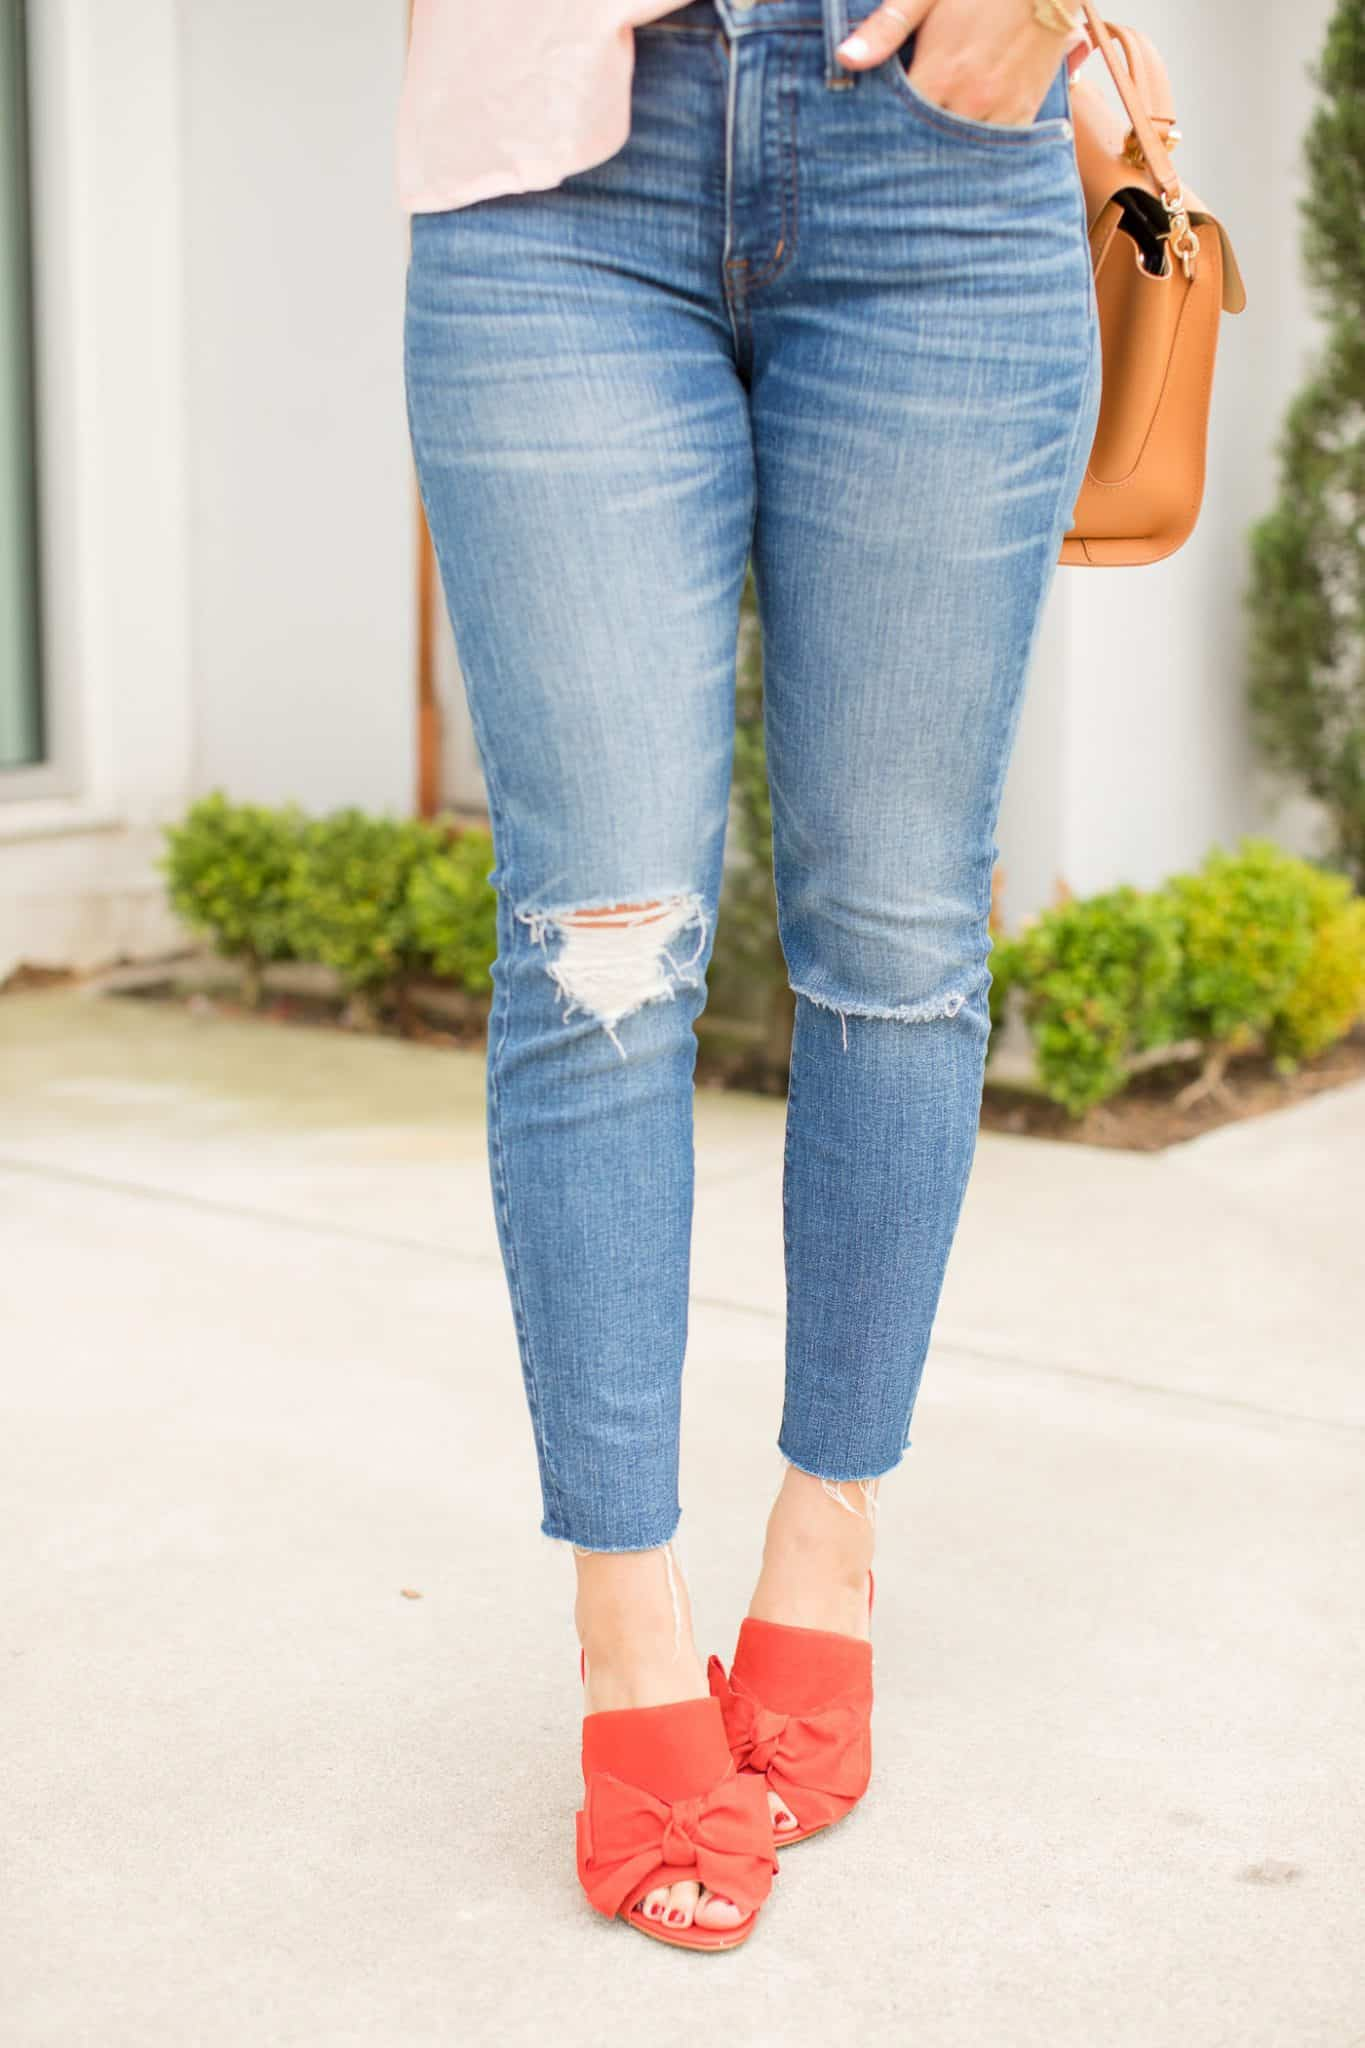 red bow mules, sam edelman shoes - My Style Vita @mystylevita